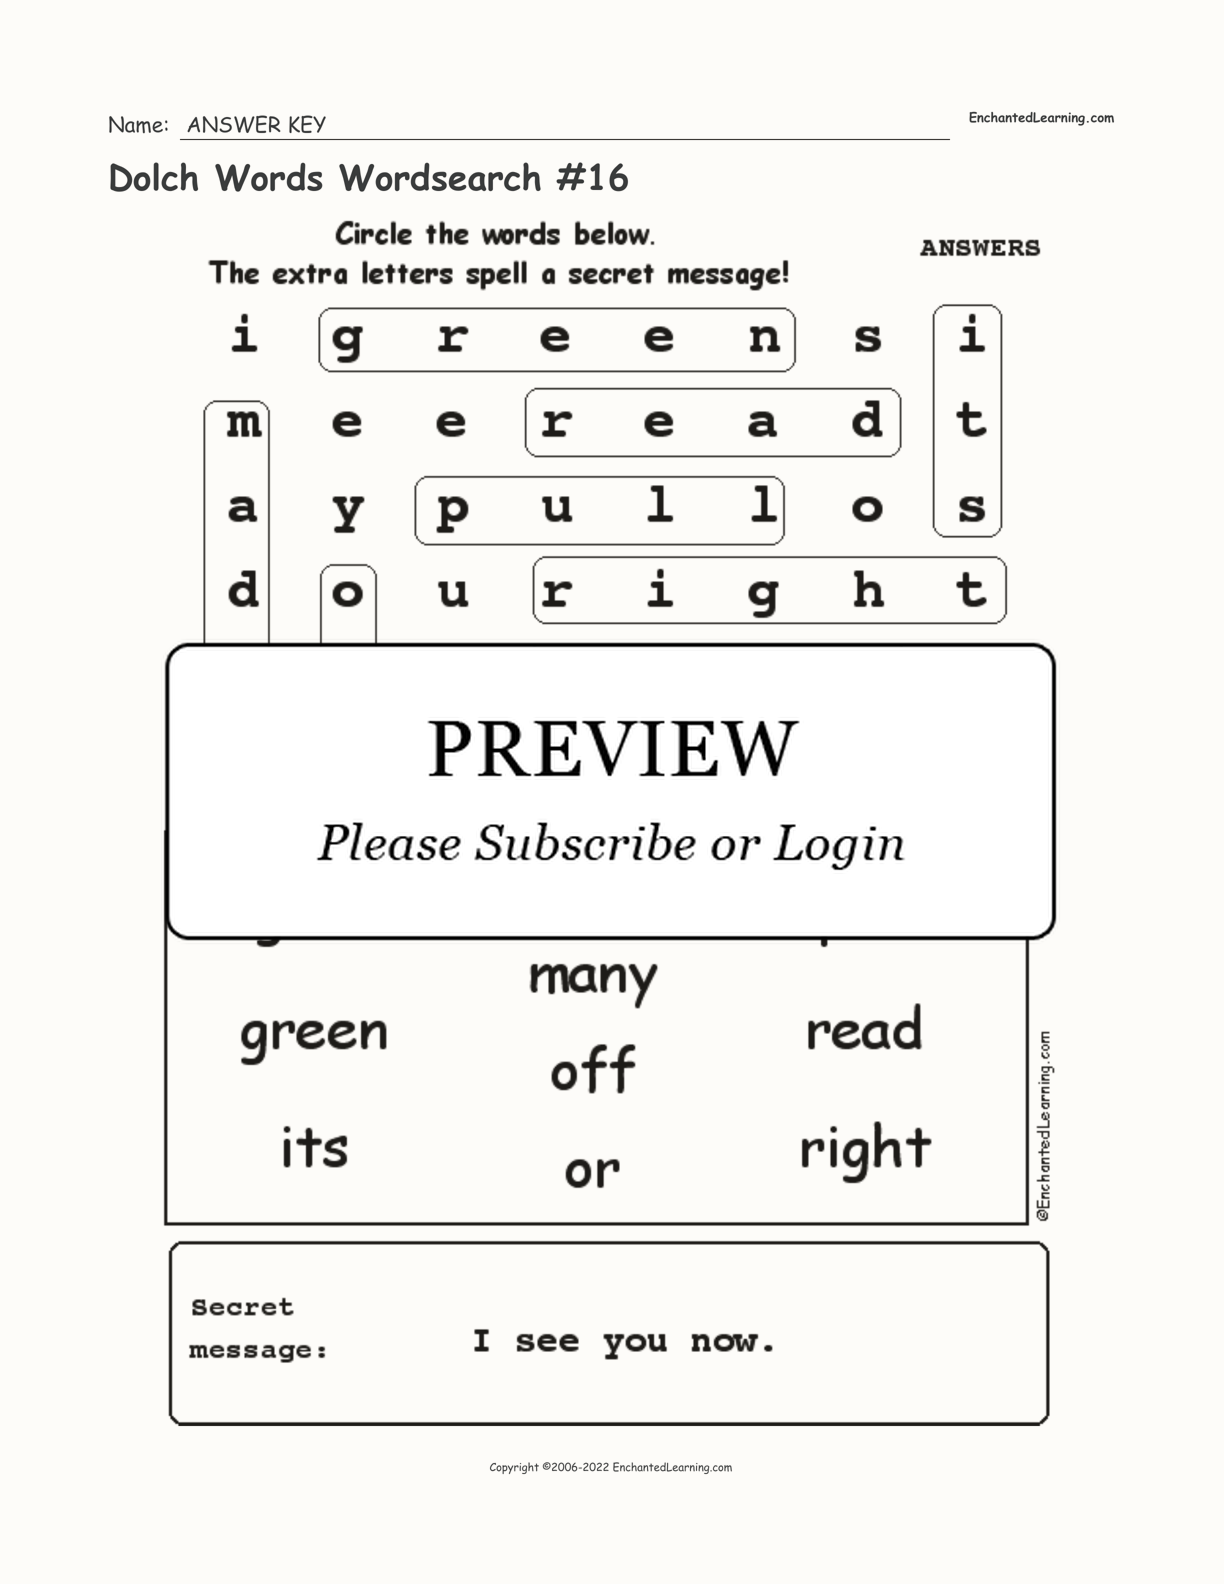 Dolch Words Wordsearch #16 interactive worksheet page 2